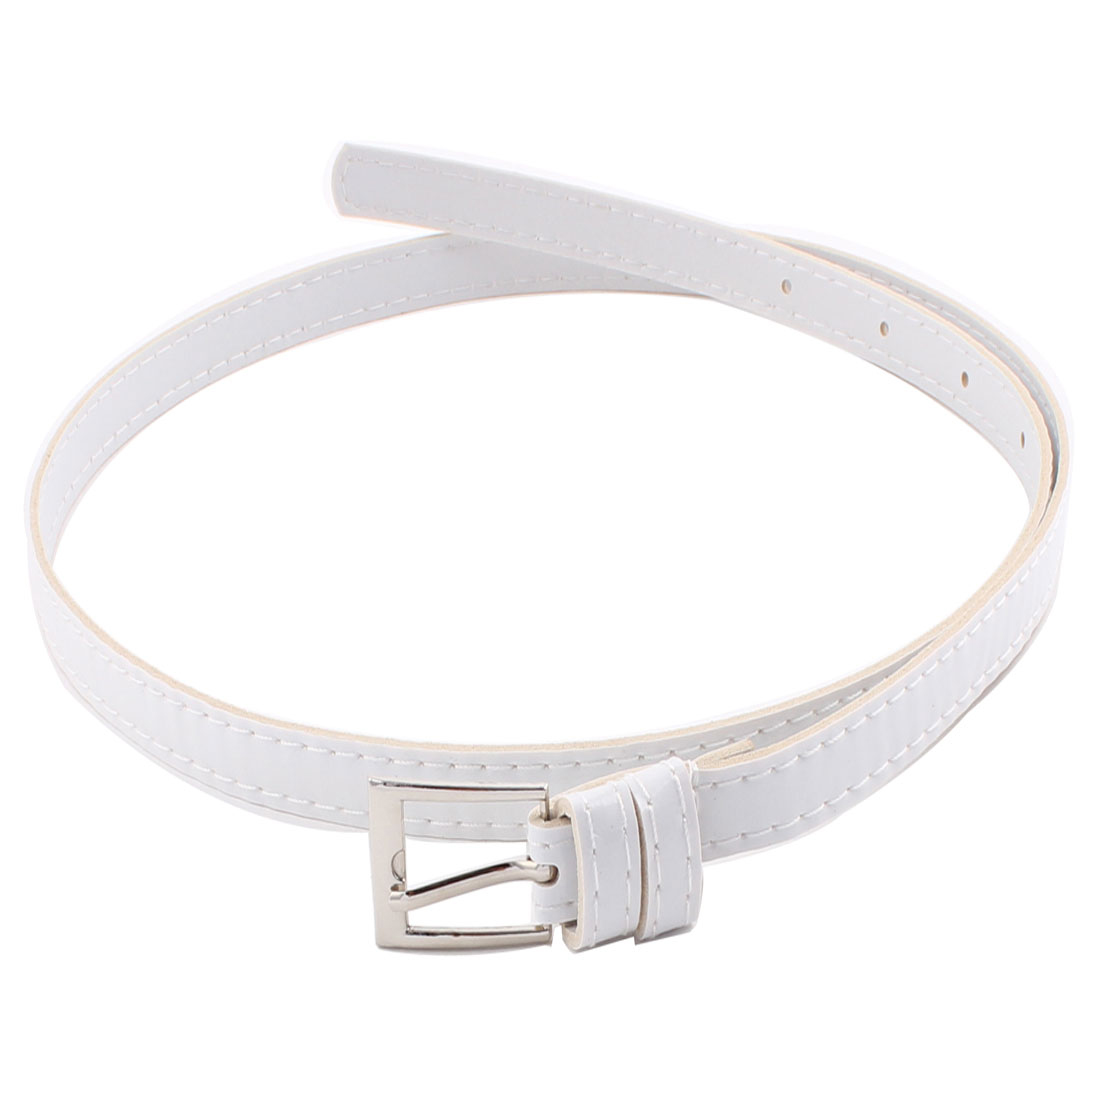 Lady Faux Leather Single Pin Buckle Design 1.2cm Width Slim Waistband Waistbelt Waist Belt White